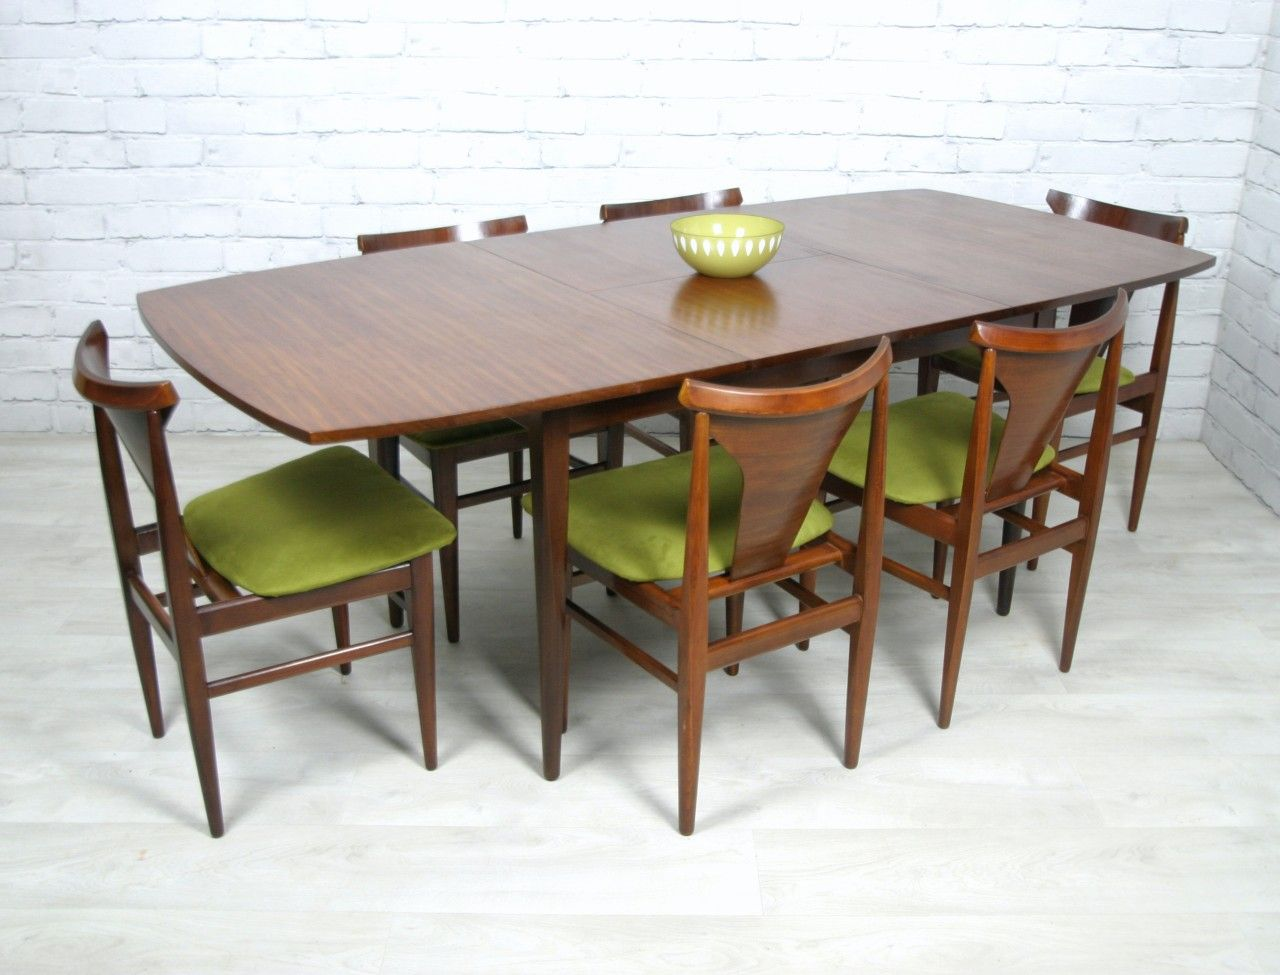 Love Love Love 6 Retro Vintage Teak Mid Century Danish Style Dining Chairs And Table Mid Century Modern Furniture Home Interior Design Mid Century Decor